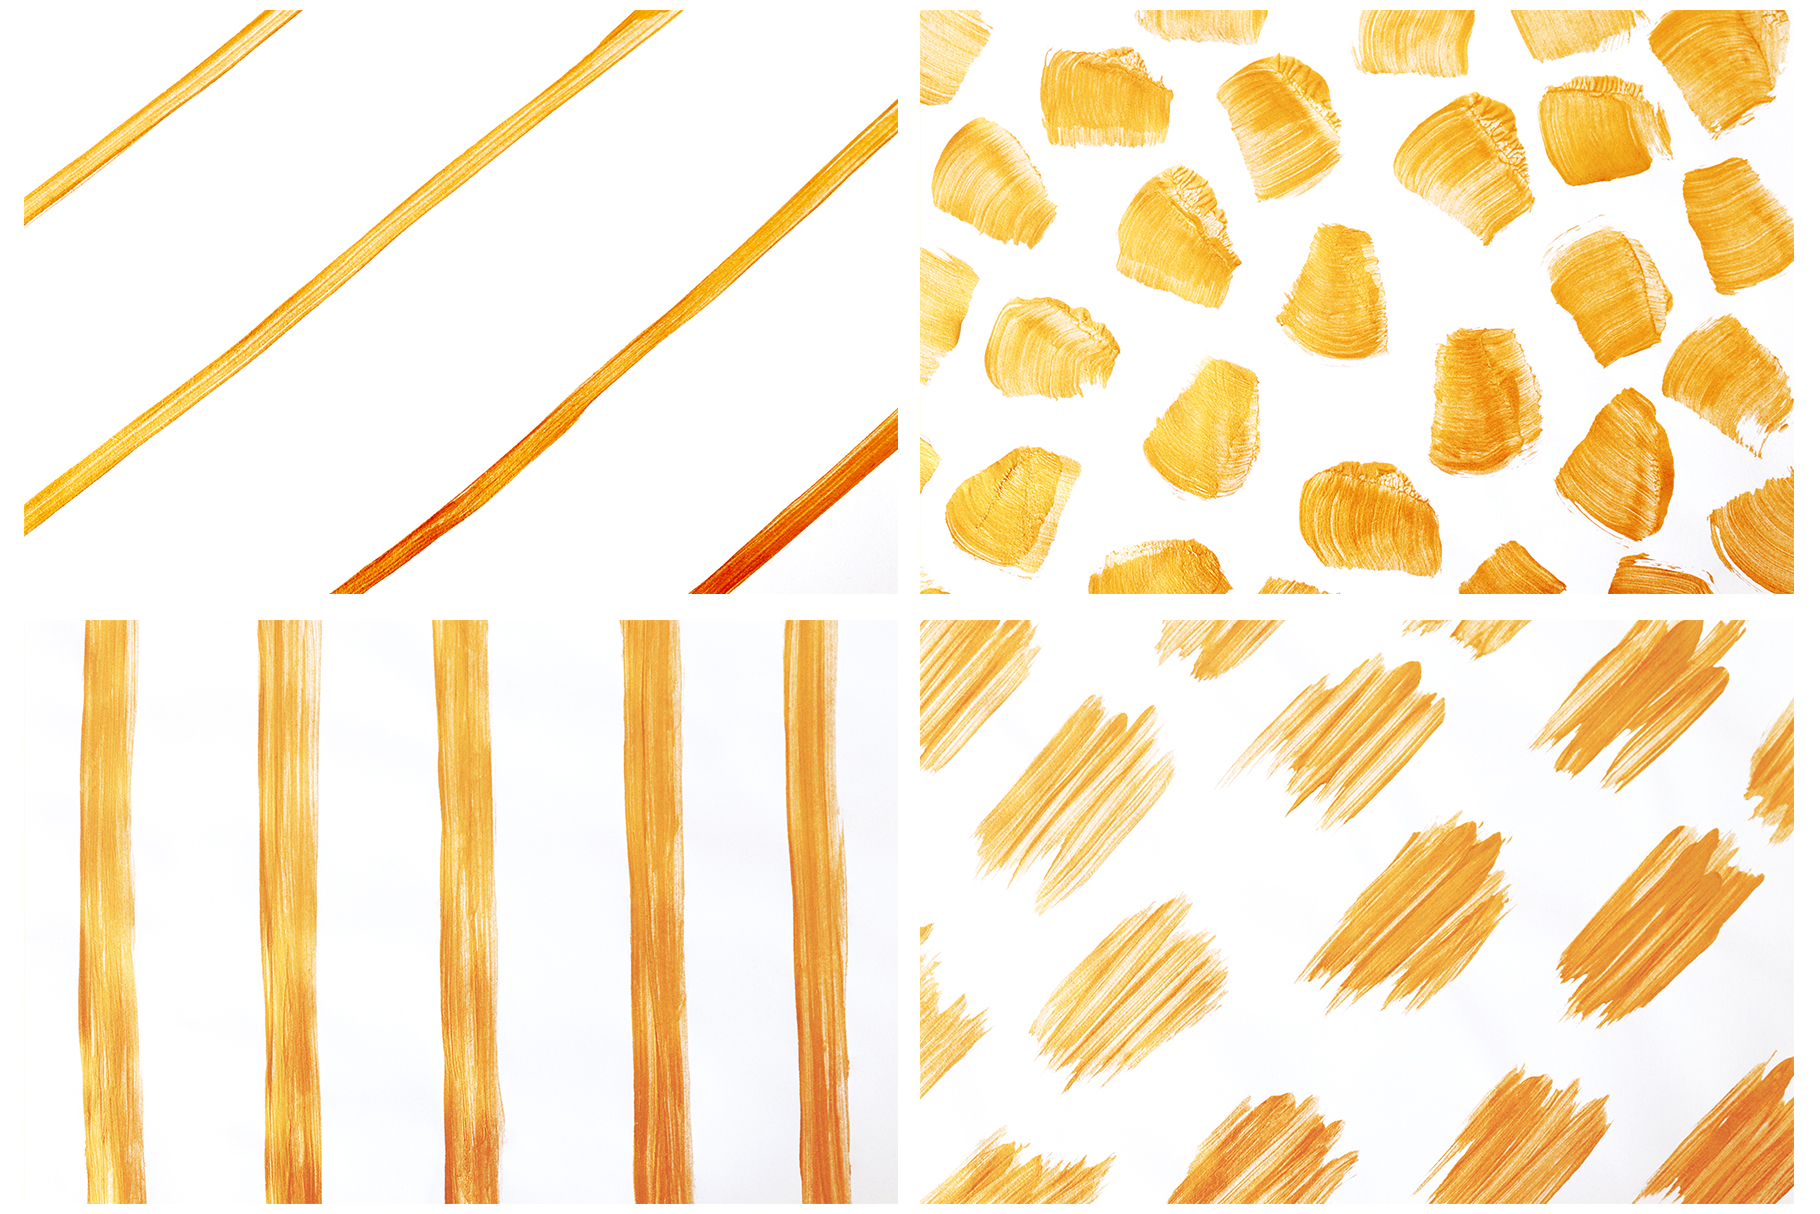 Gold & White Backgrounds, Wedding Invitation Papers example image 2